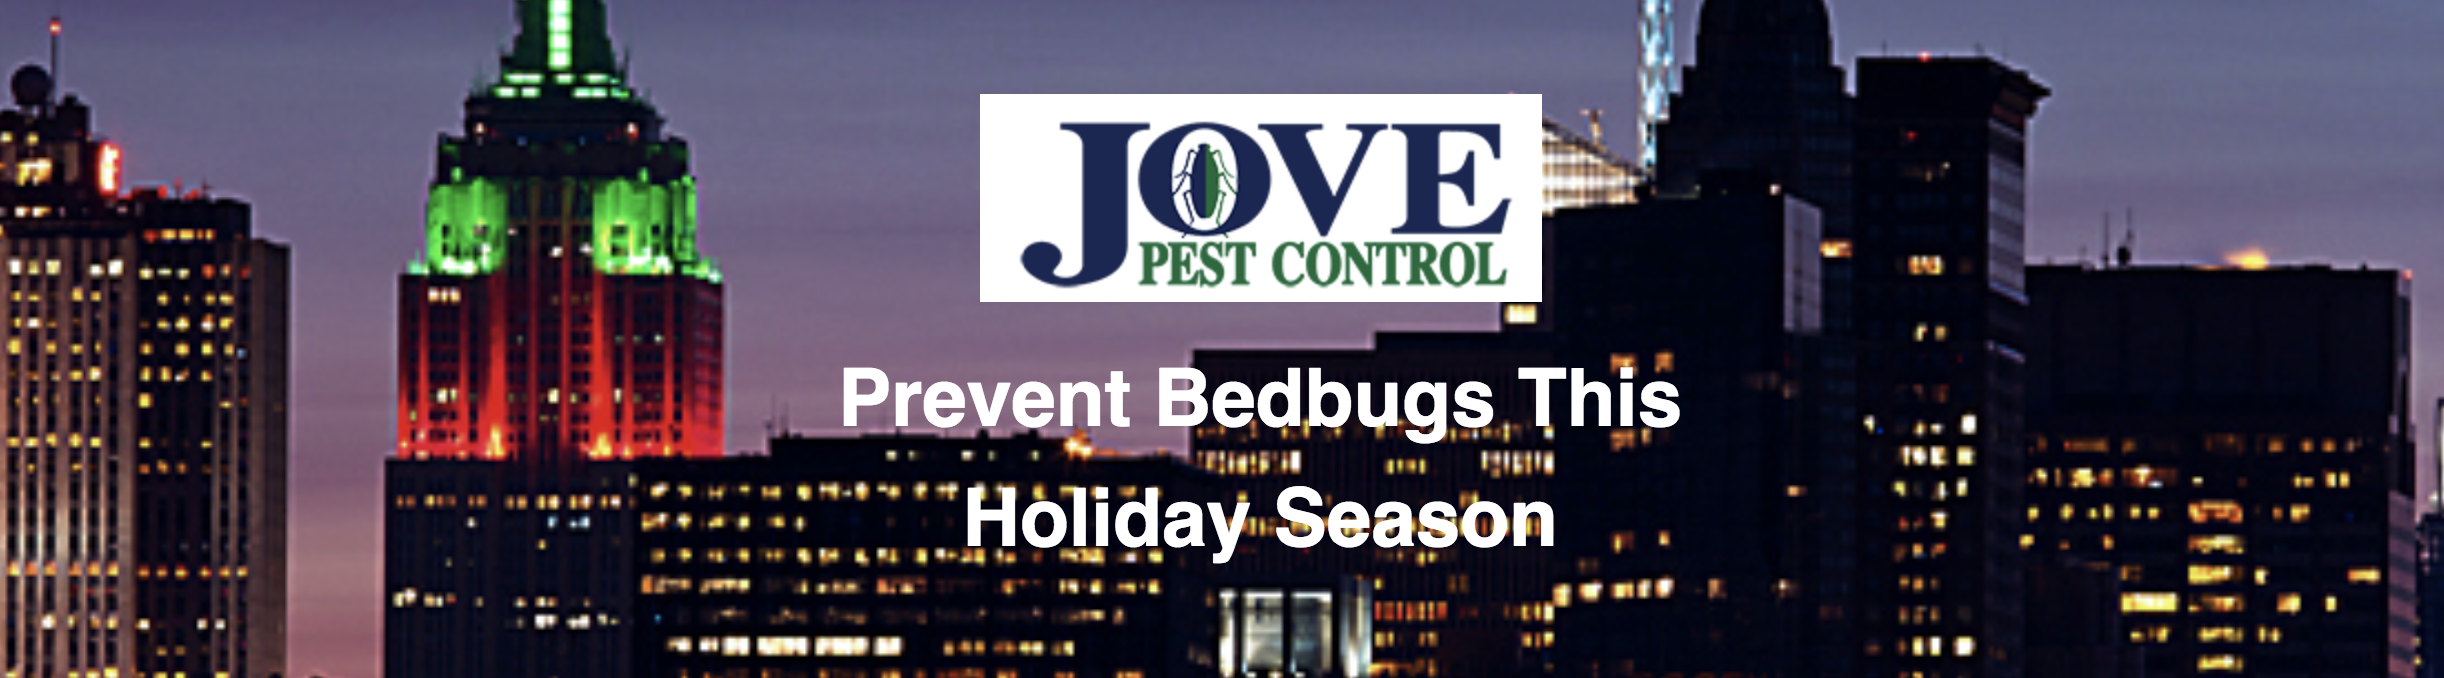 4 Tips To Prevent Bedbugs This Holiday Season